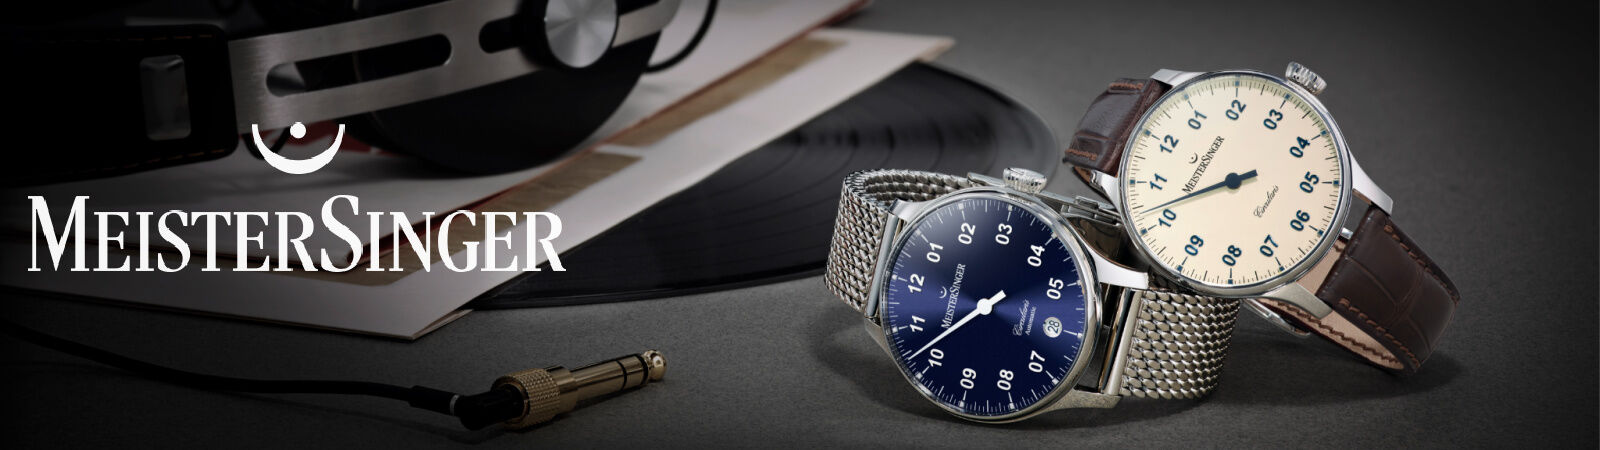 MeisterSinger Mechanical Wristwatches Available at Sportique.com